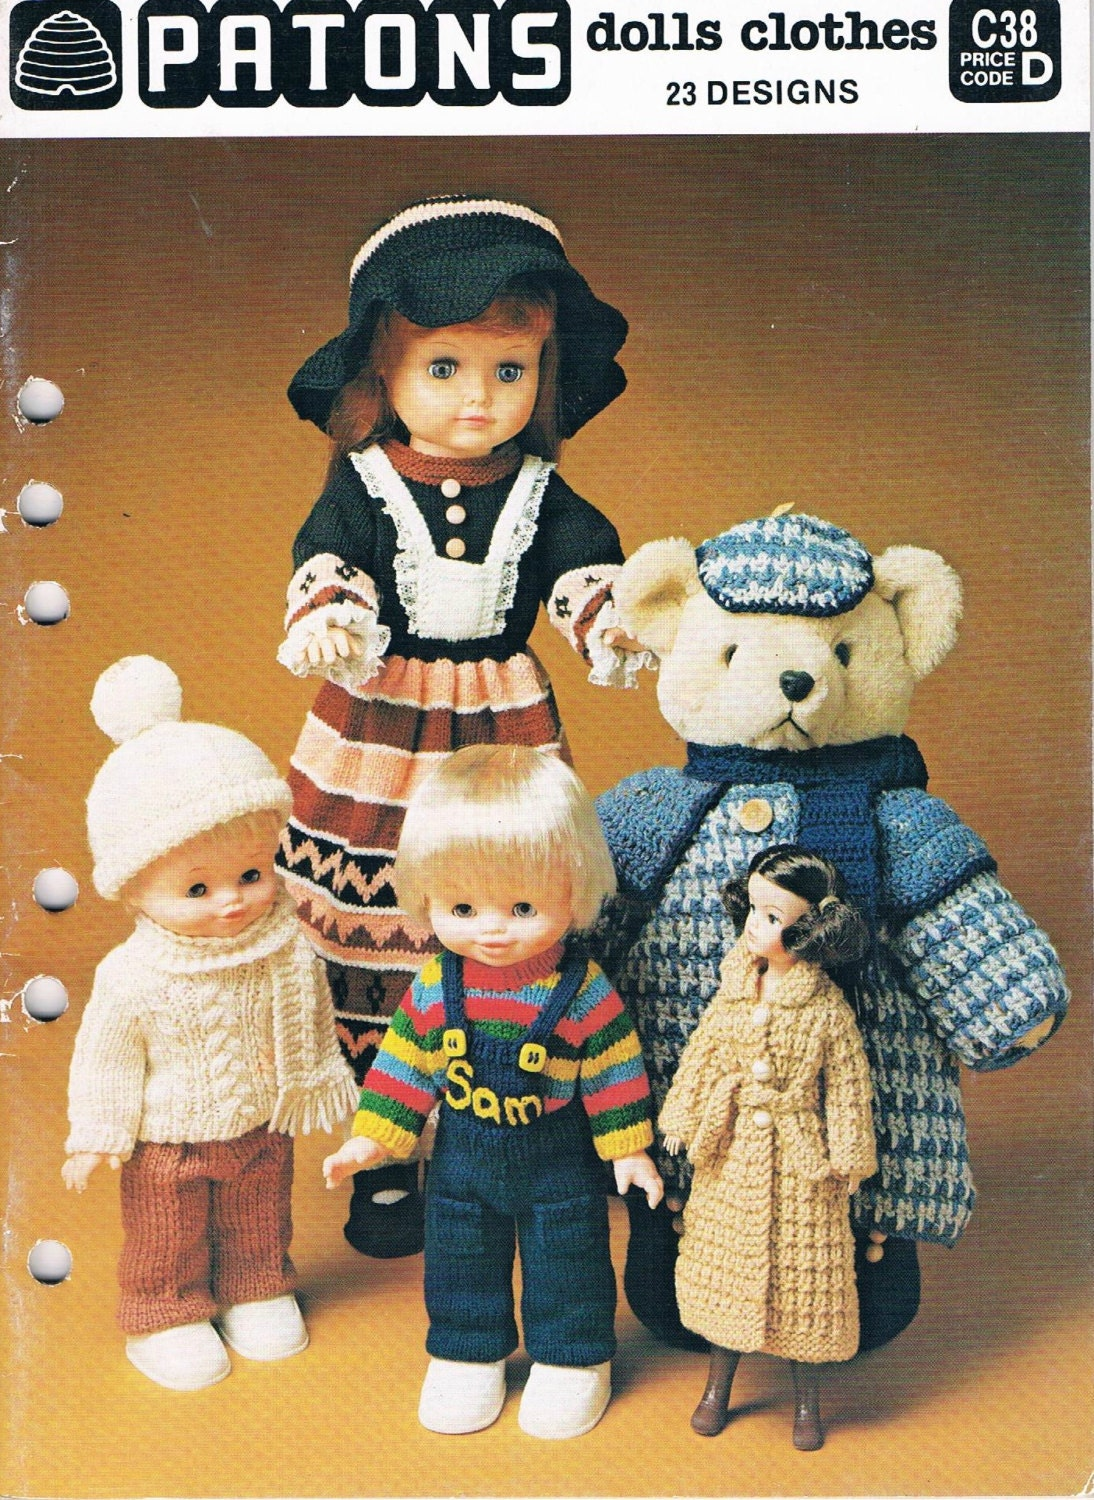 Patons Knitting Patterns For Dolls Clothes : Vintage Patons Knitted Patterns for Dolls Clothes by ...